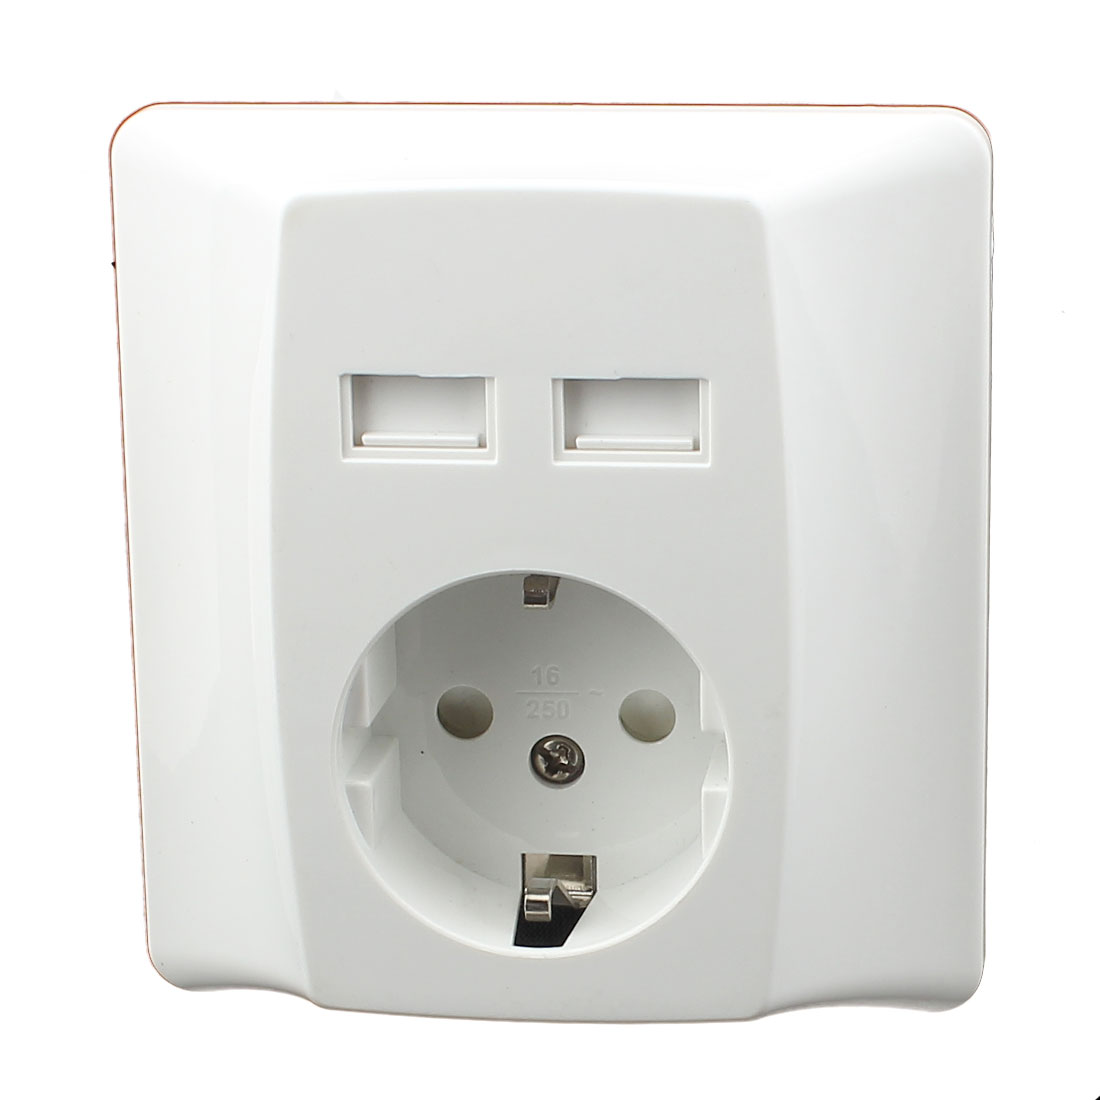 AC 100V-240V EU Socket 2 USB Port Charging DC 5V 2.4A Mains Power Wall Outlet